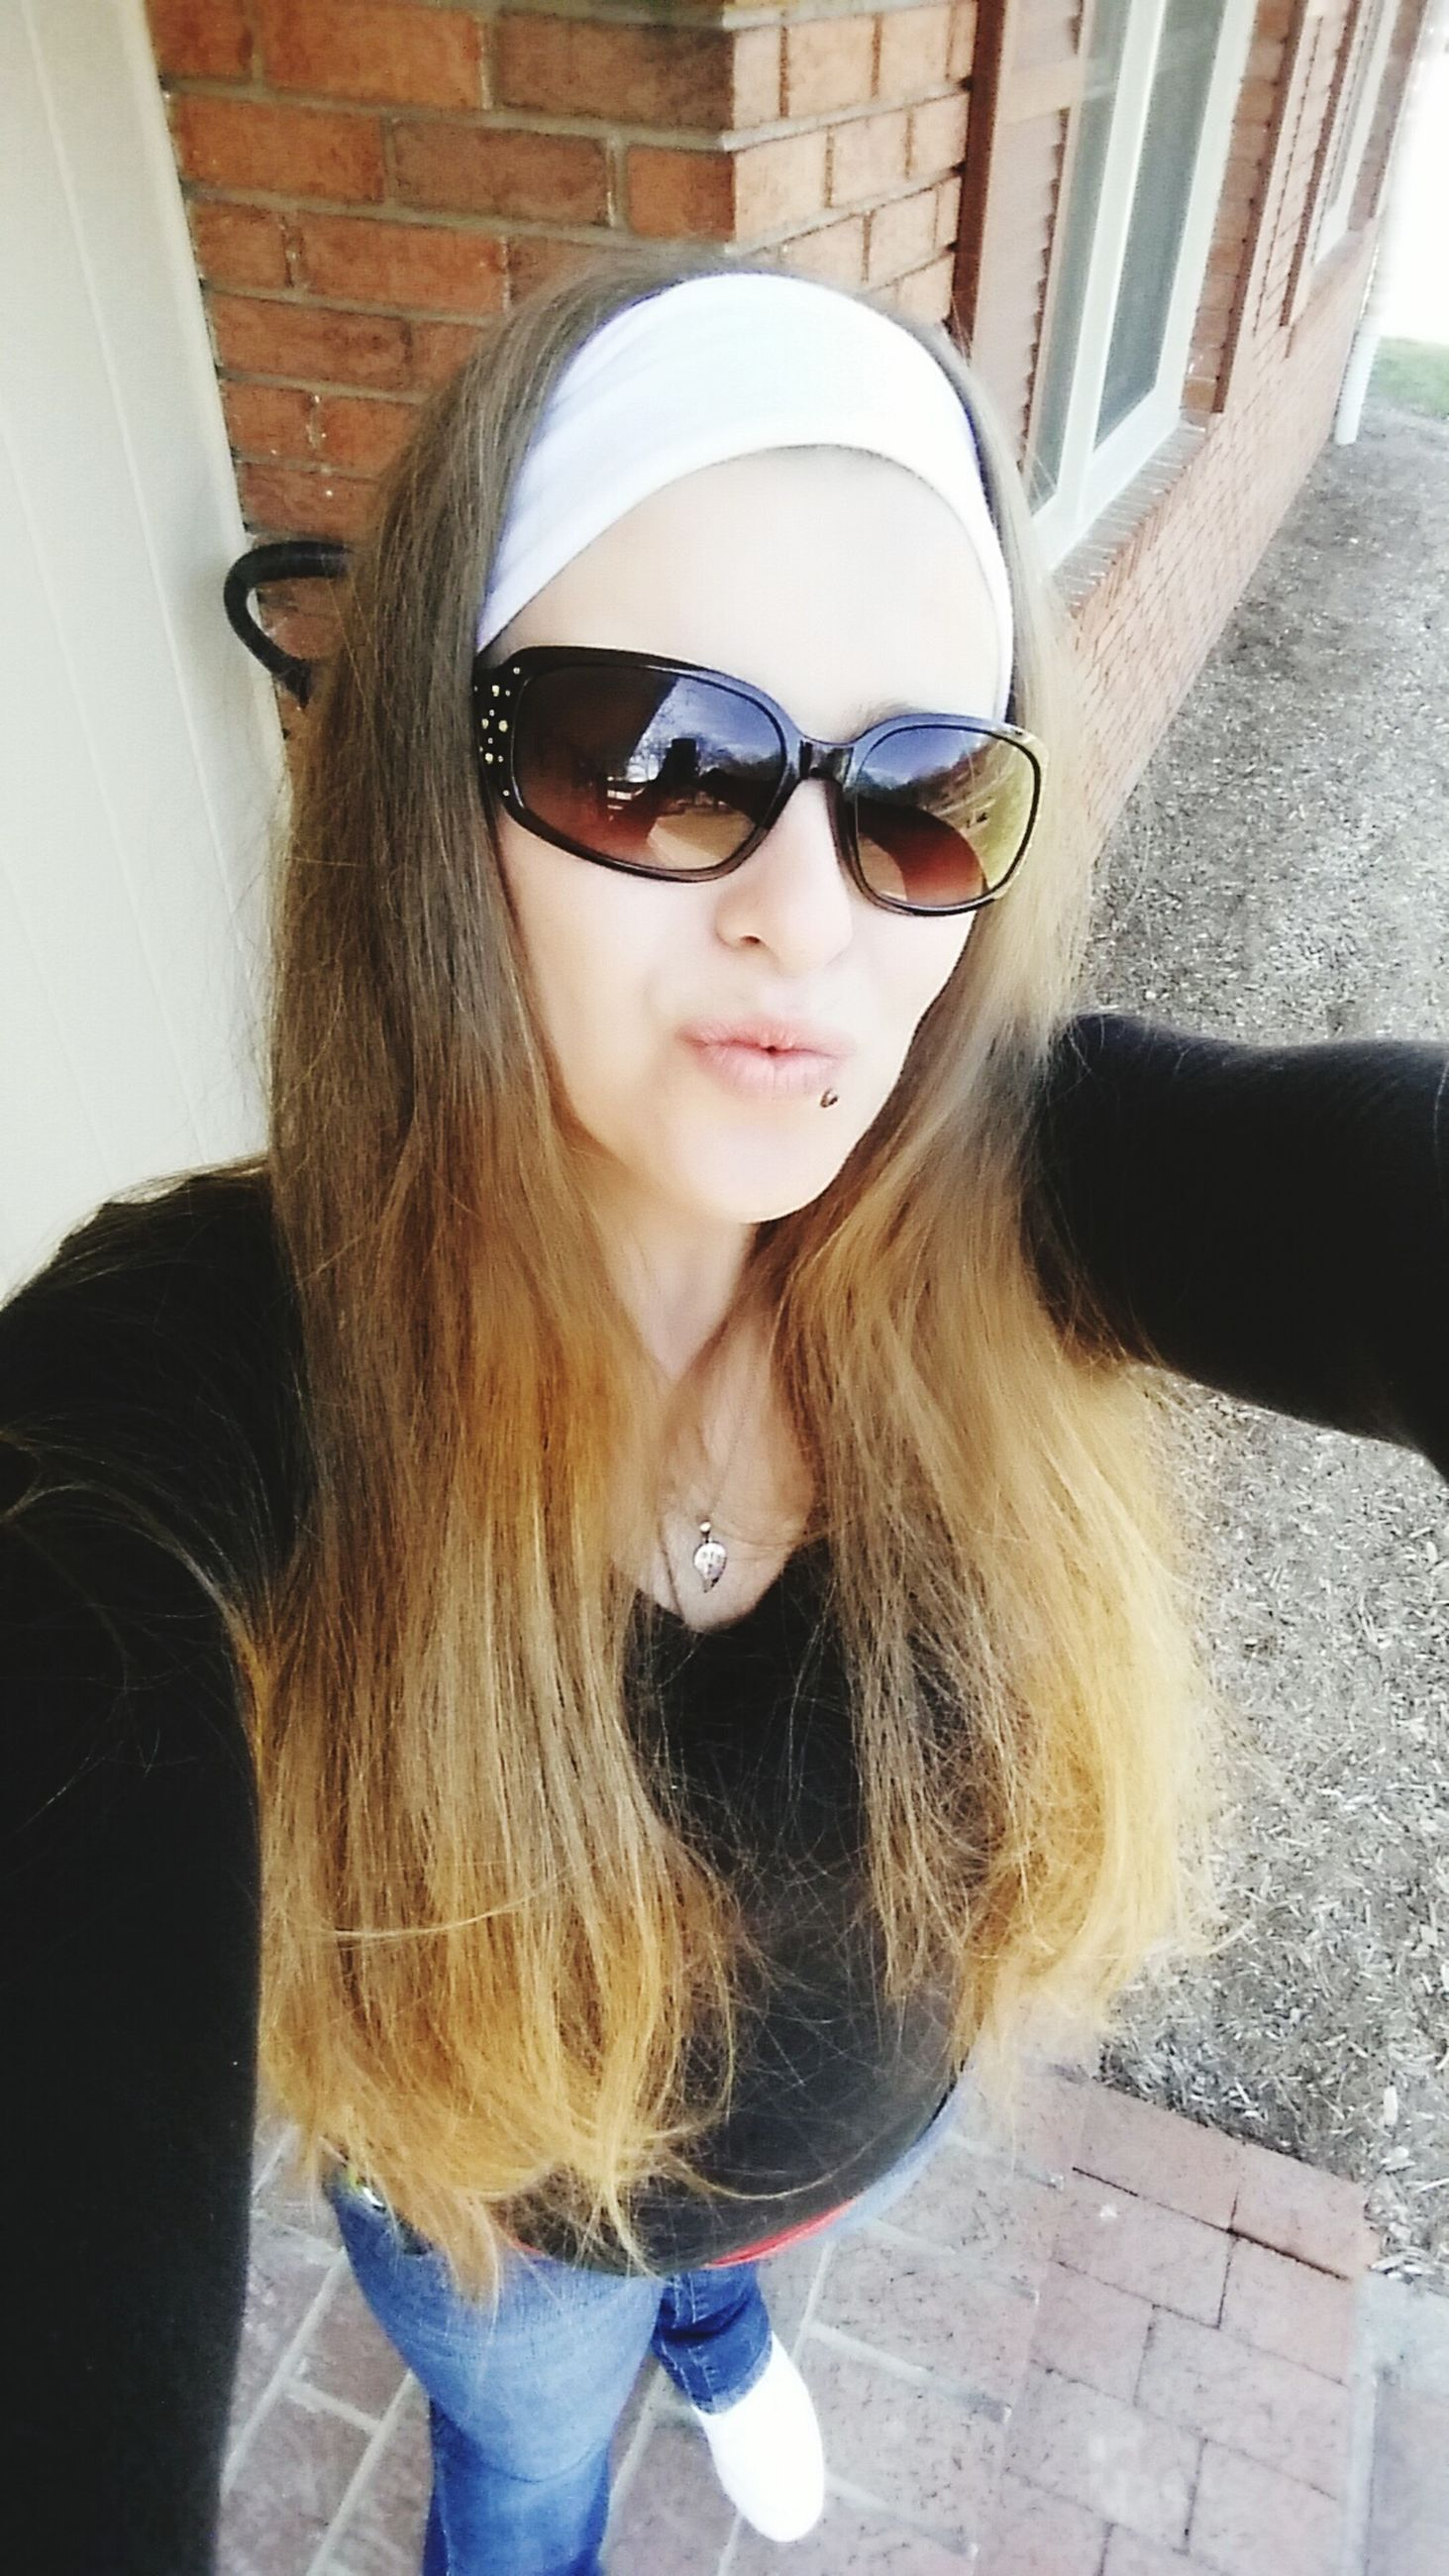 sunglasses, lifestyles, young adult, leisure activity, young women, person, long hair, portrait, front view, casual clothing, looking at camera, headshot, blond hair, day, smiling, sunlight, transportation